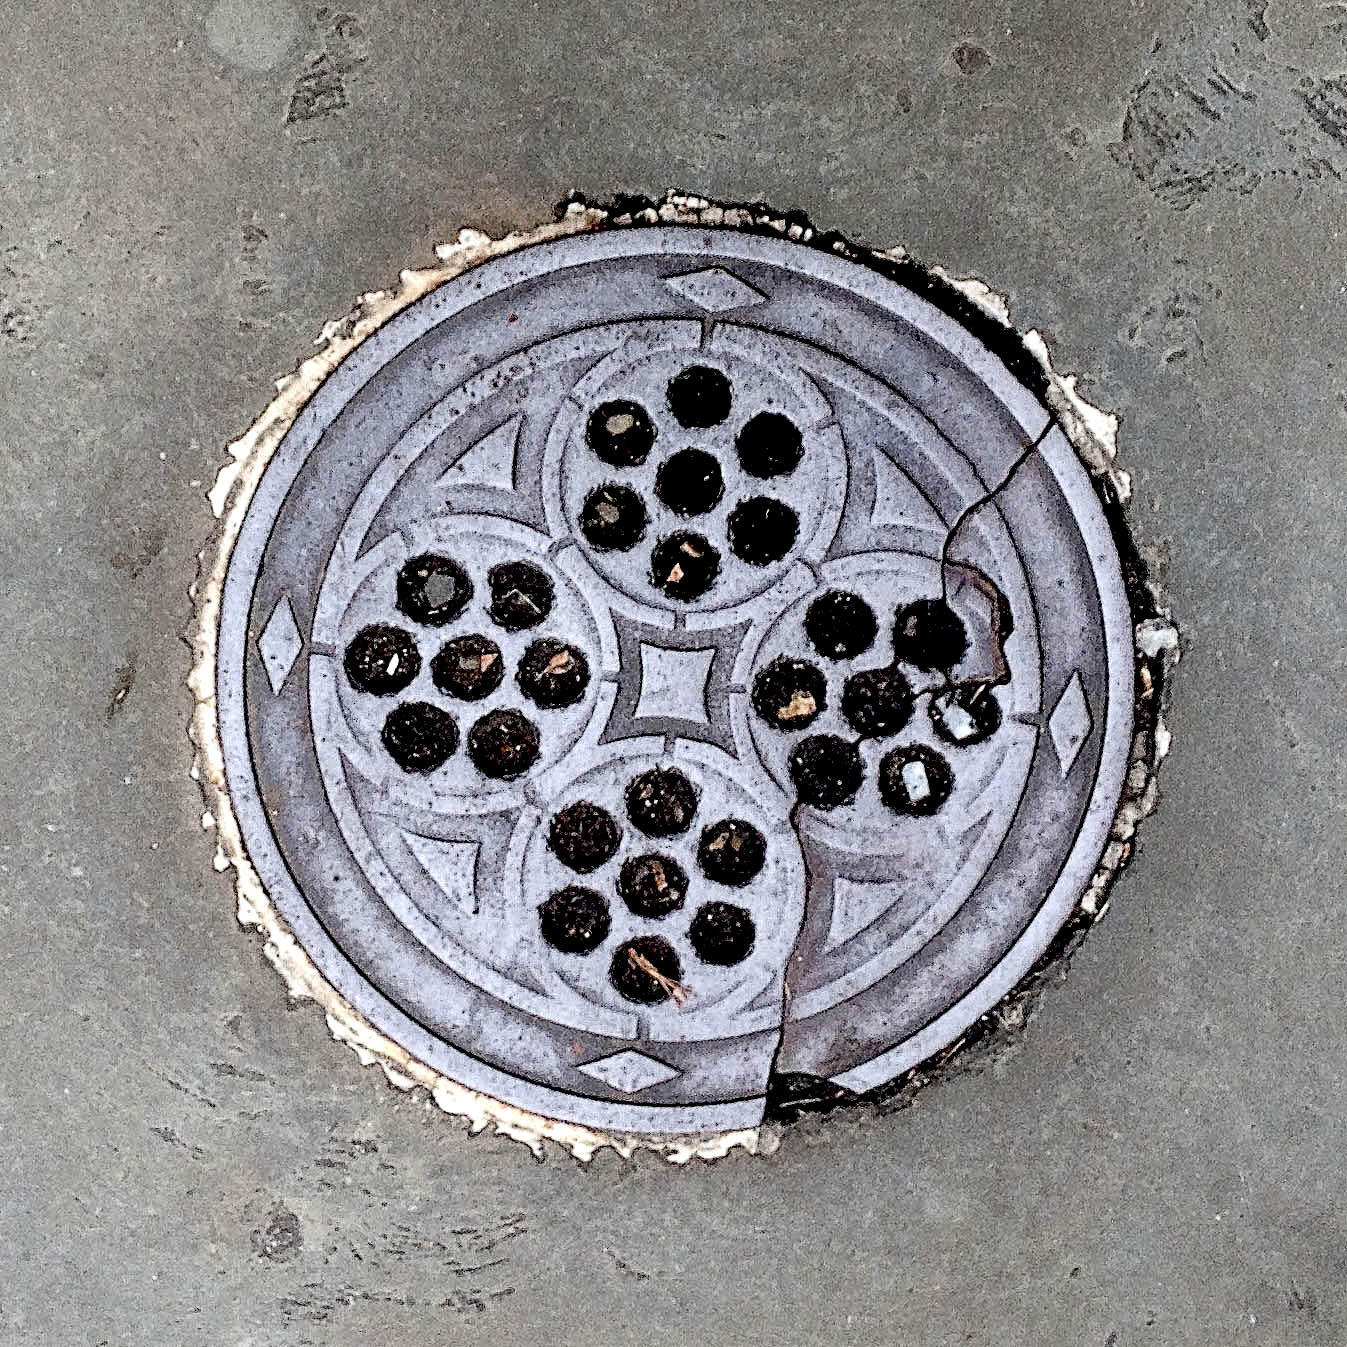 Manhole Cover, London - Cast iron with twenty eight holes arranged into four circular patterns